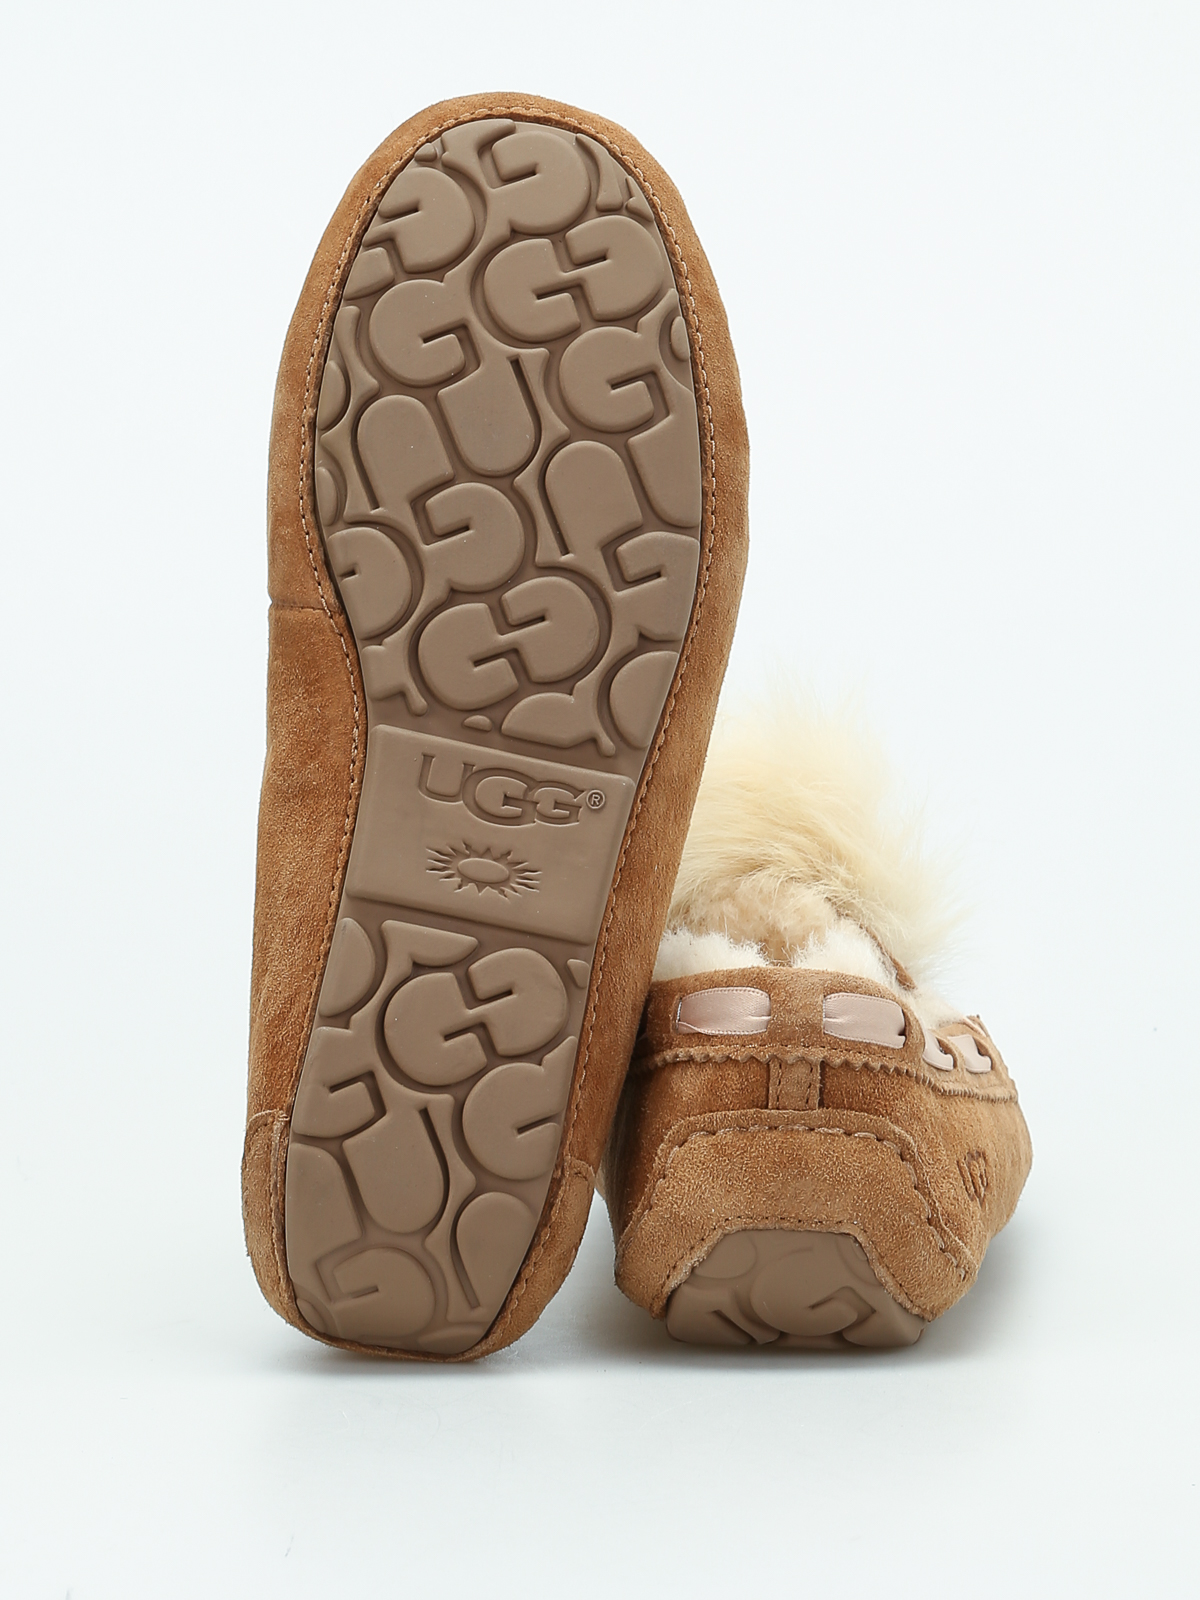 8563e96761 Ugg - Dakota Pom Pom slippers - Loafers   Slippers - 1019015 W CHE